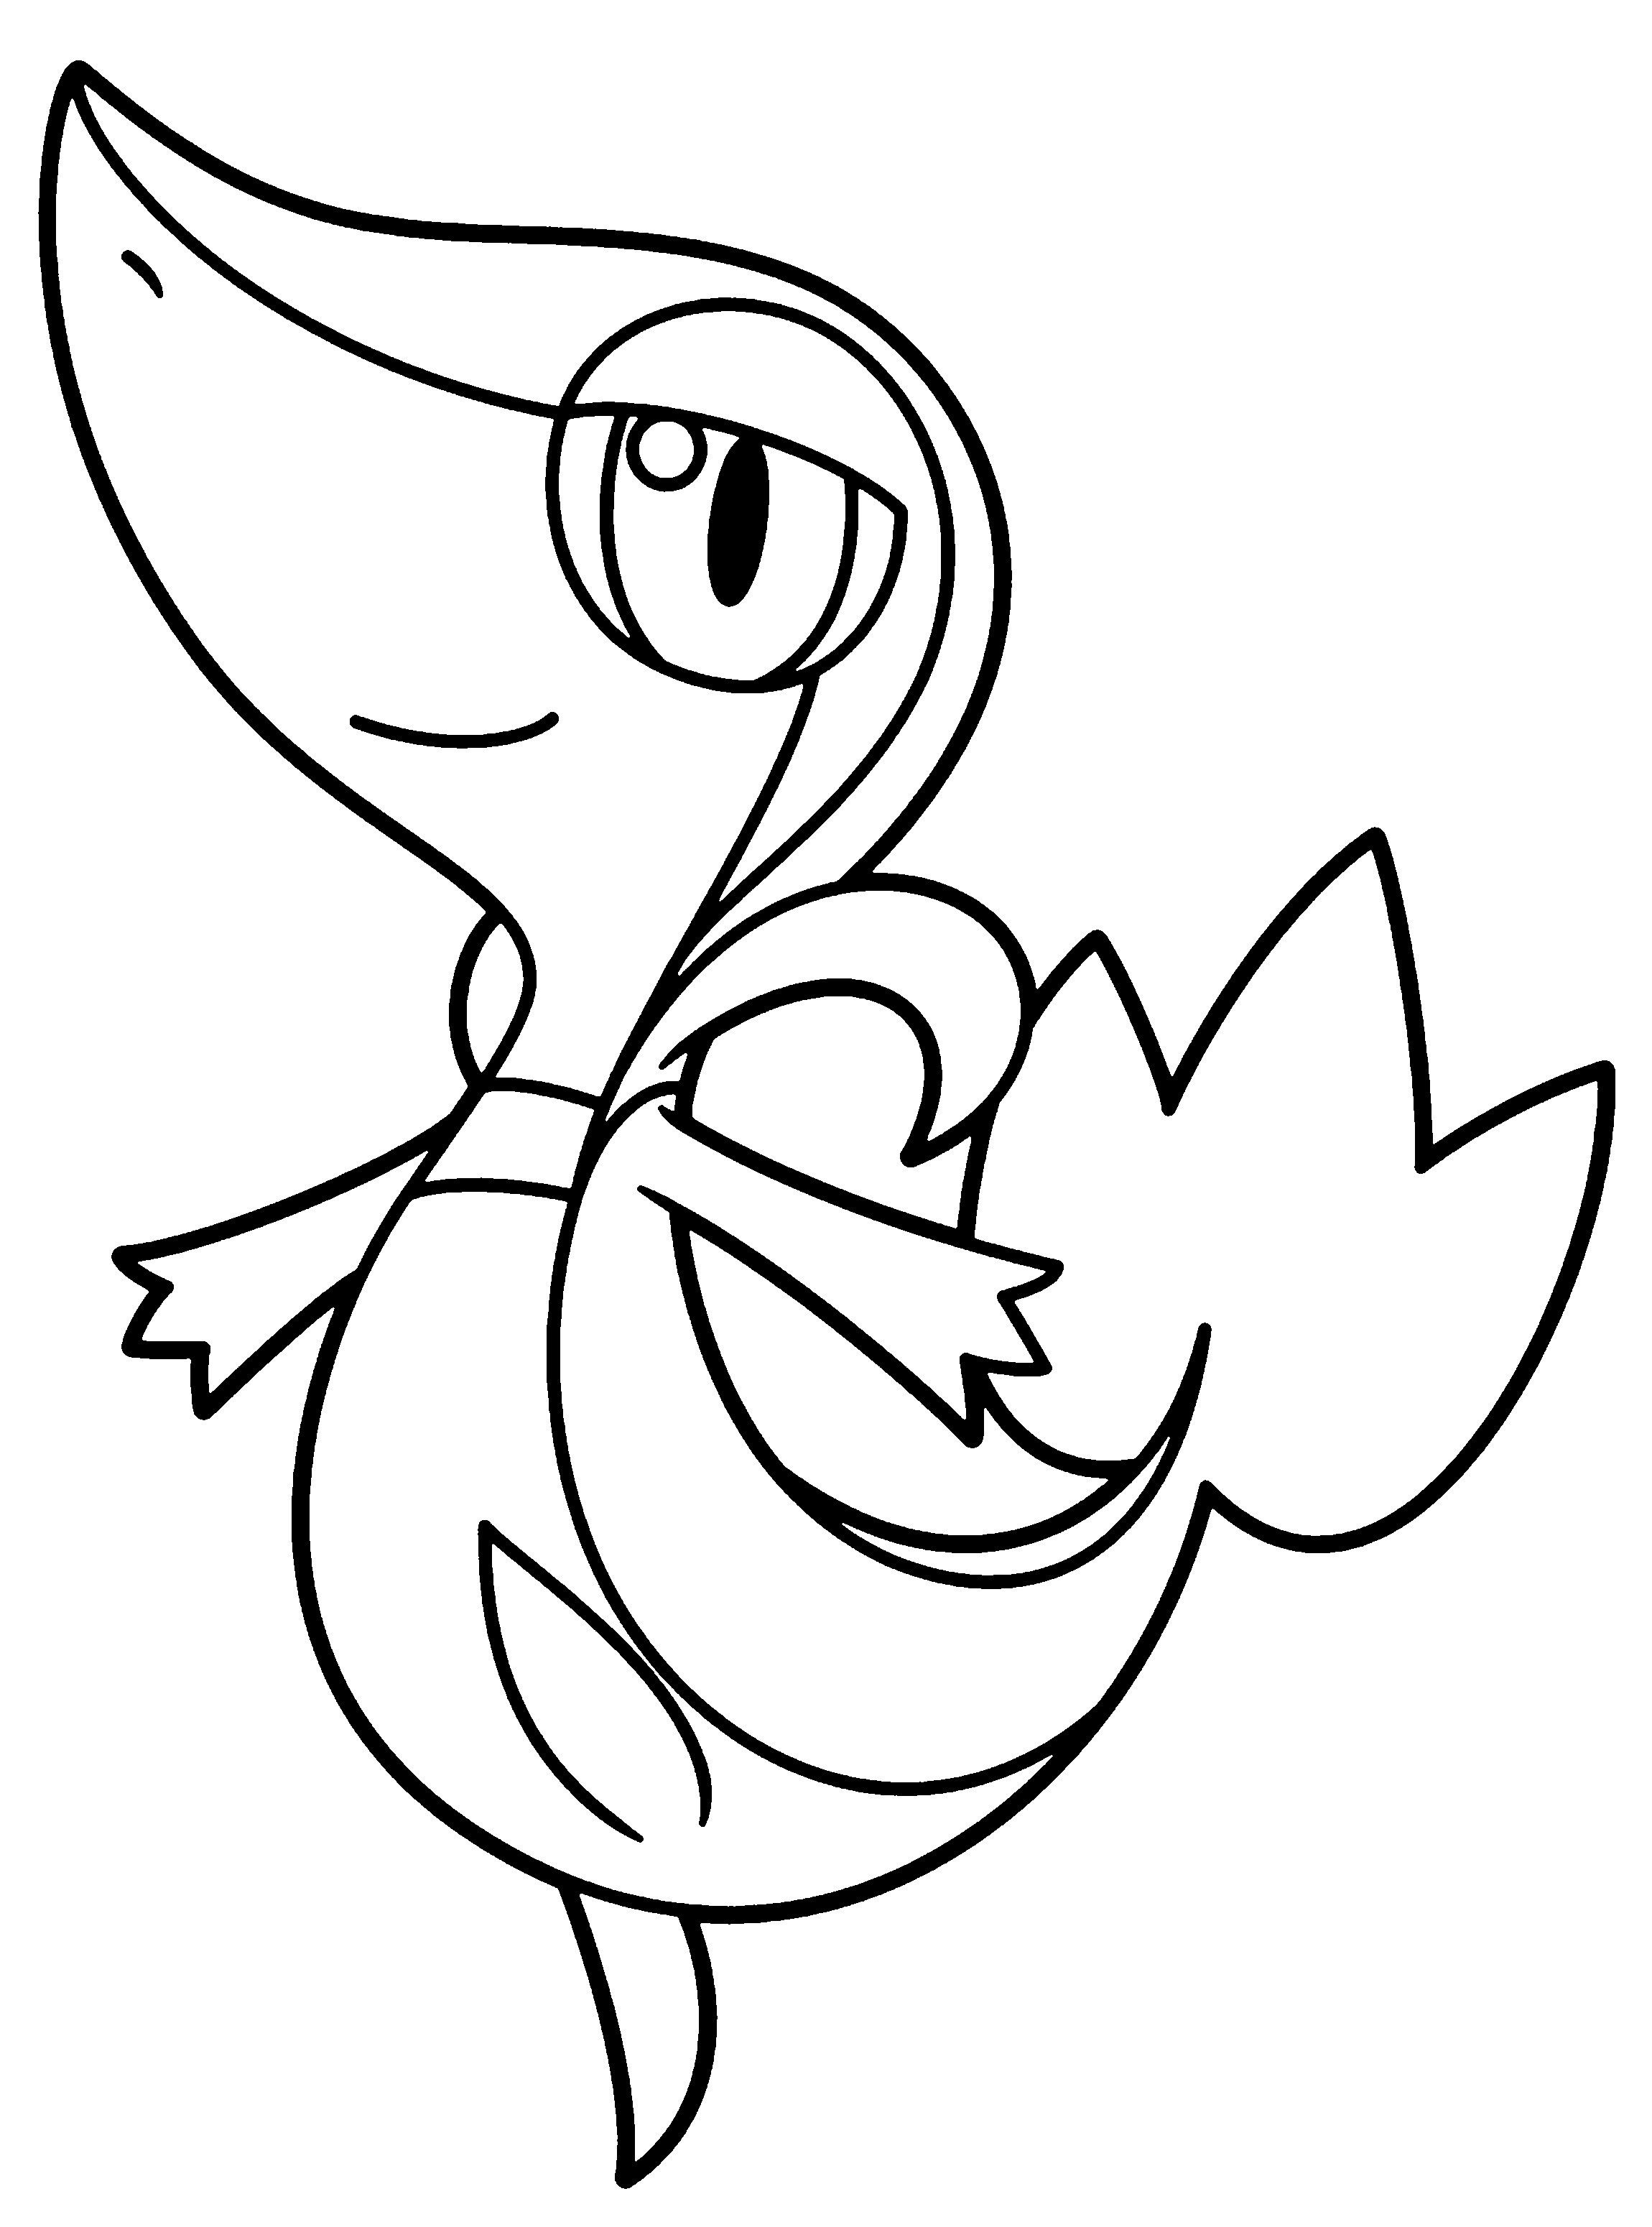 Ivy Pokemon Coloring Pages Through The Thousands Of Photos On Line In Relation To Ivy Pokemon Pokemon Coloring Pokemon Coloring Pages Cartoon Coloring Pages